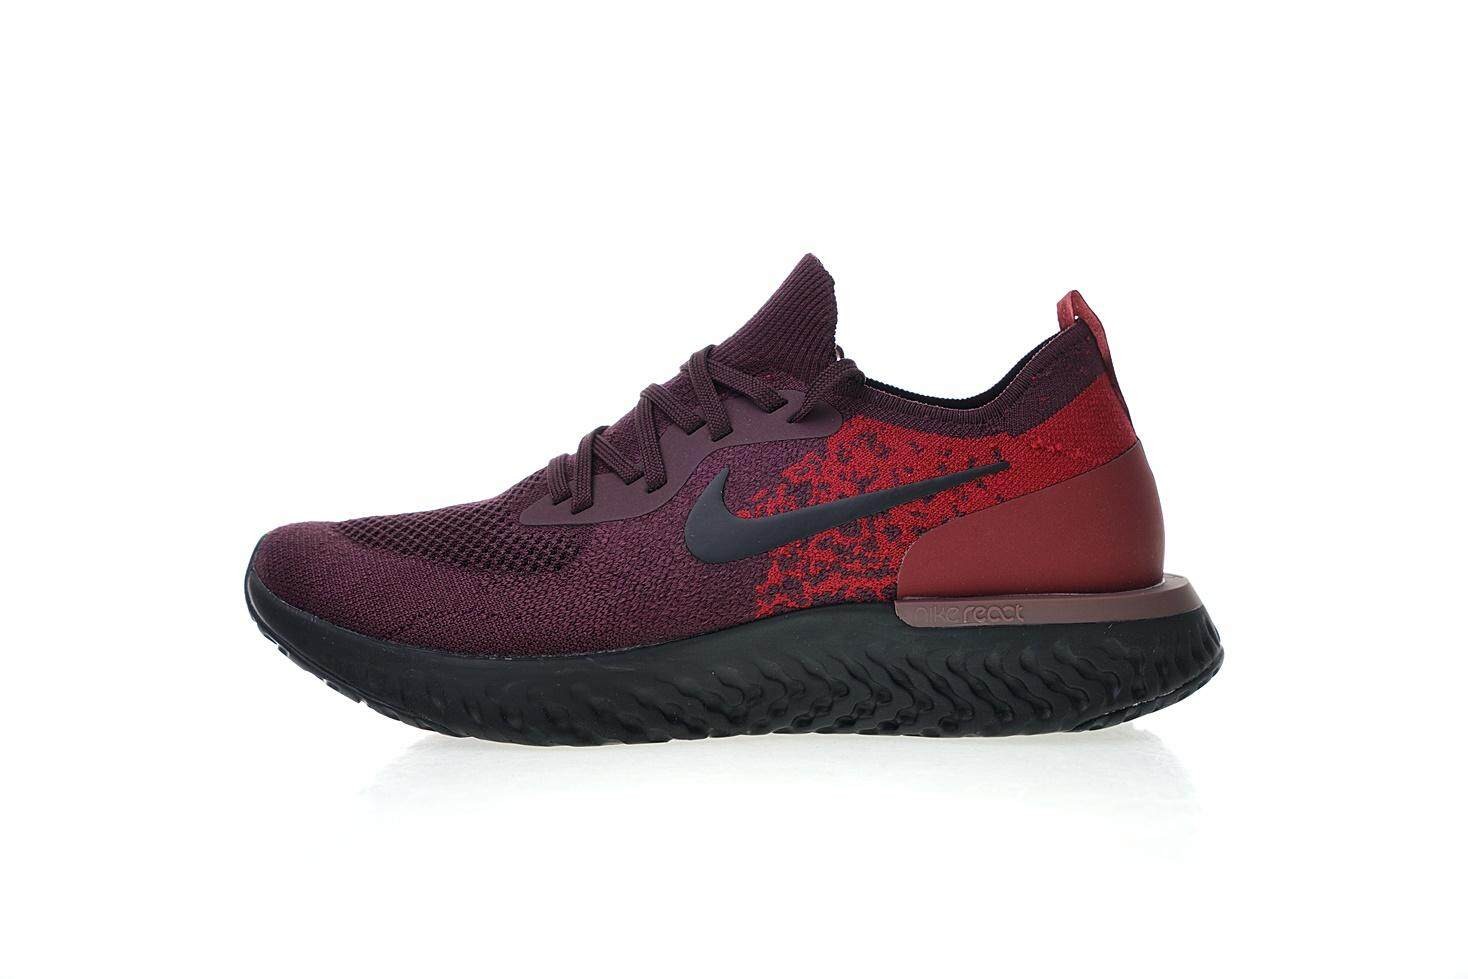 Nike Epic React Flyknit Men s Comfortable Running Sneaker Fashion Casual  Sport Shoes (Wine ... 90cde69e1a